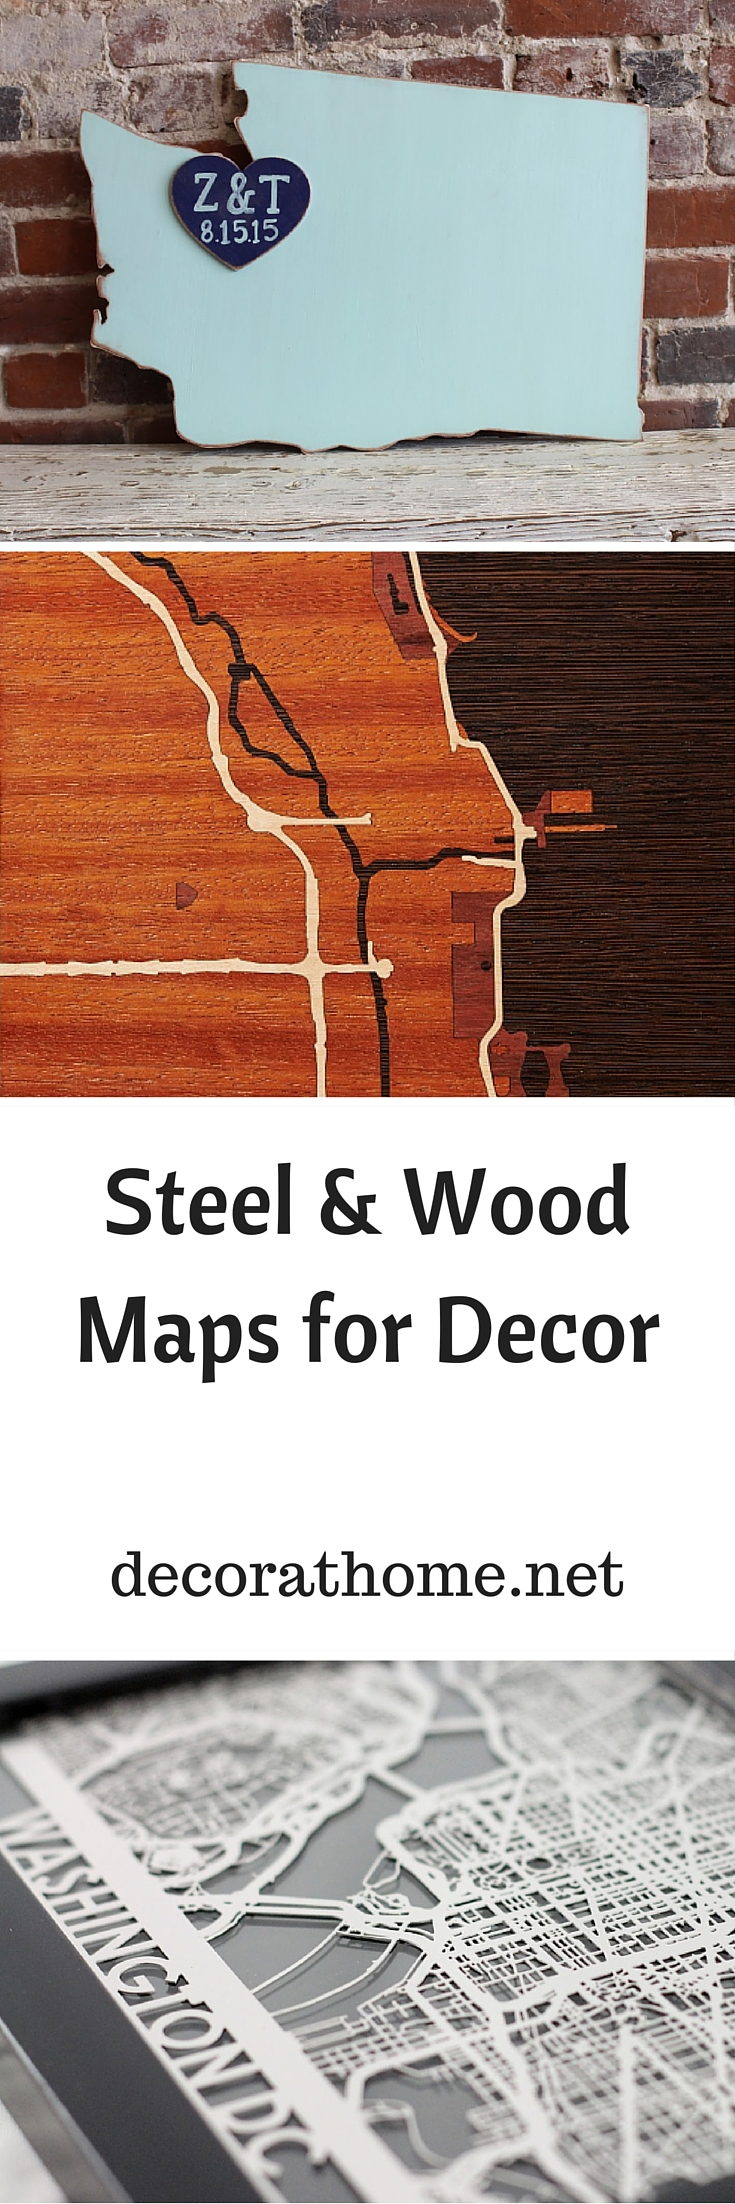 Steel & Wood Maps for Decor